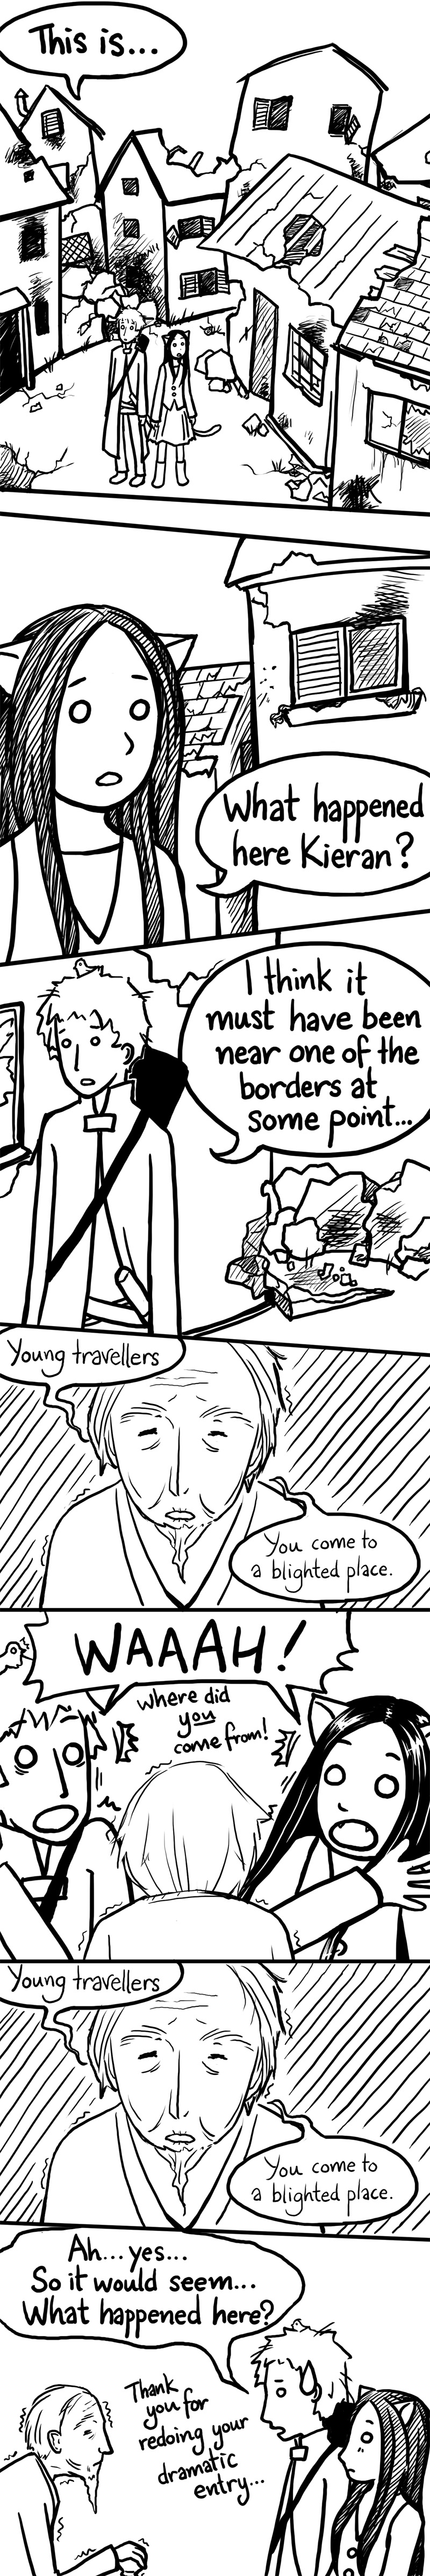 comic-2012-01-10-A-Blighted-Place.jpg